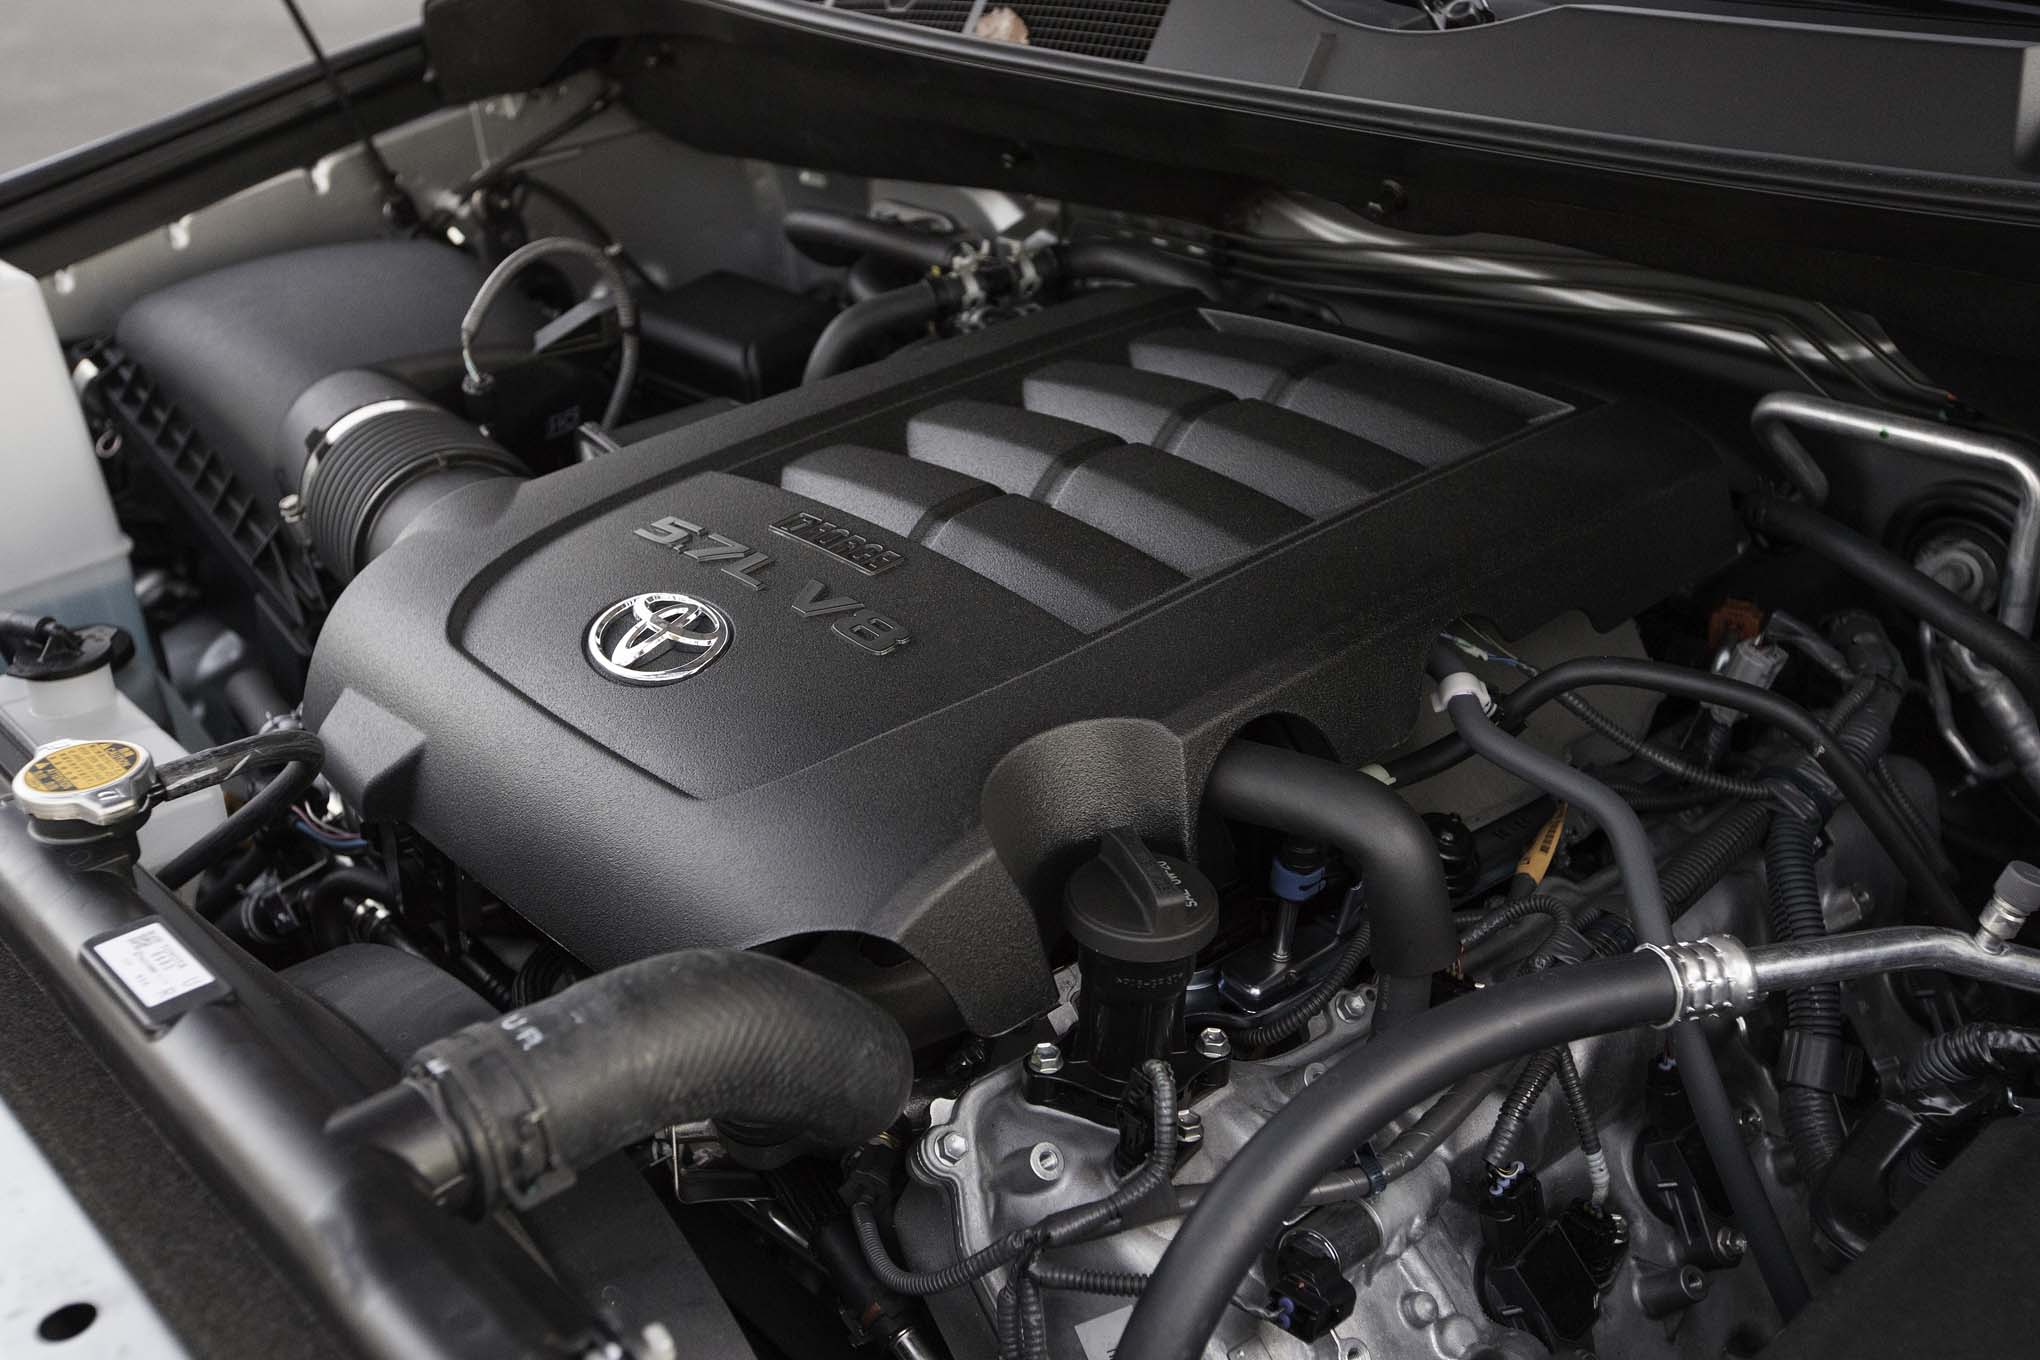 2017 Toyota Sequoia 4×4 Platinum View Engine (Photo 26 of 26)